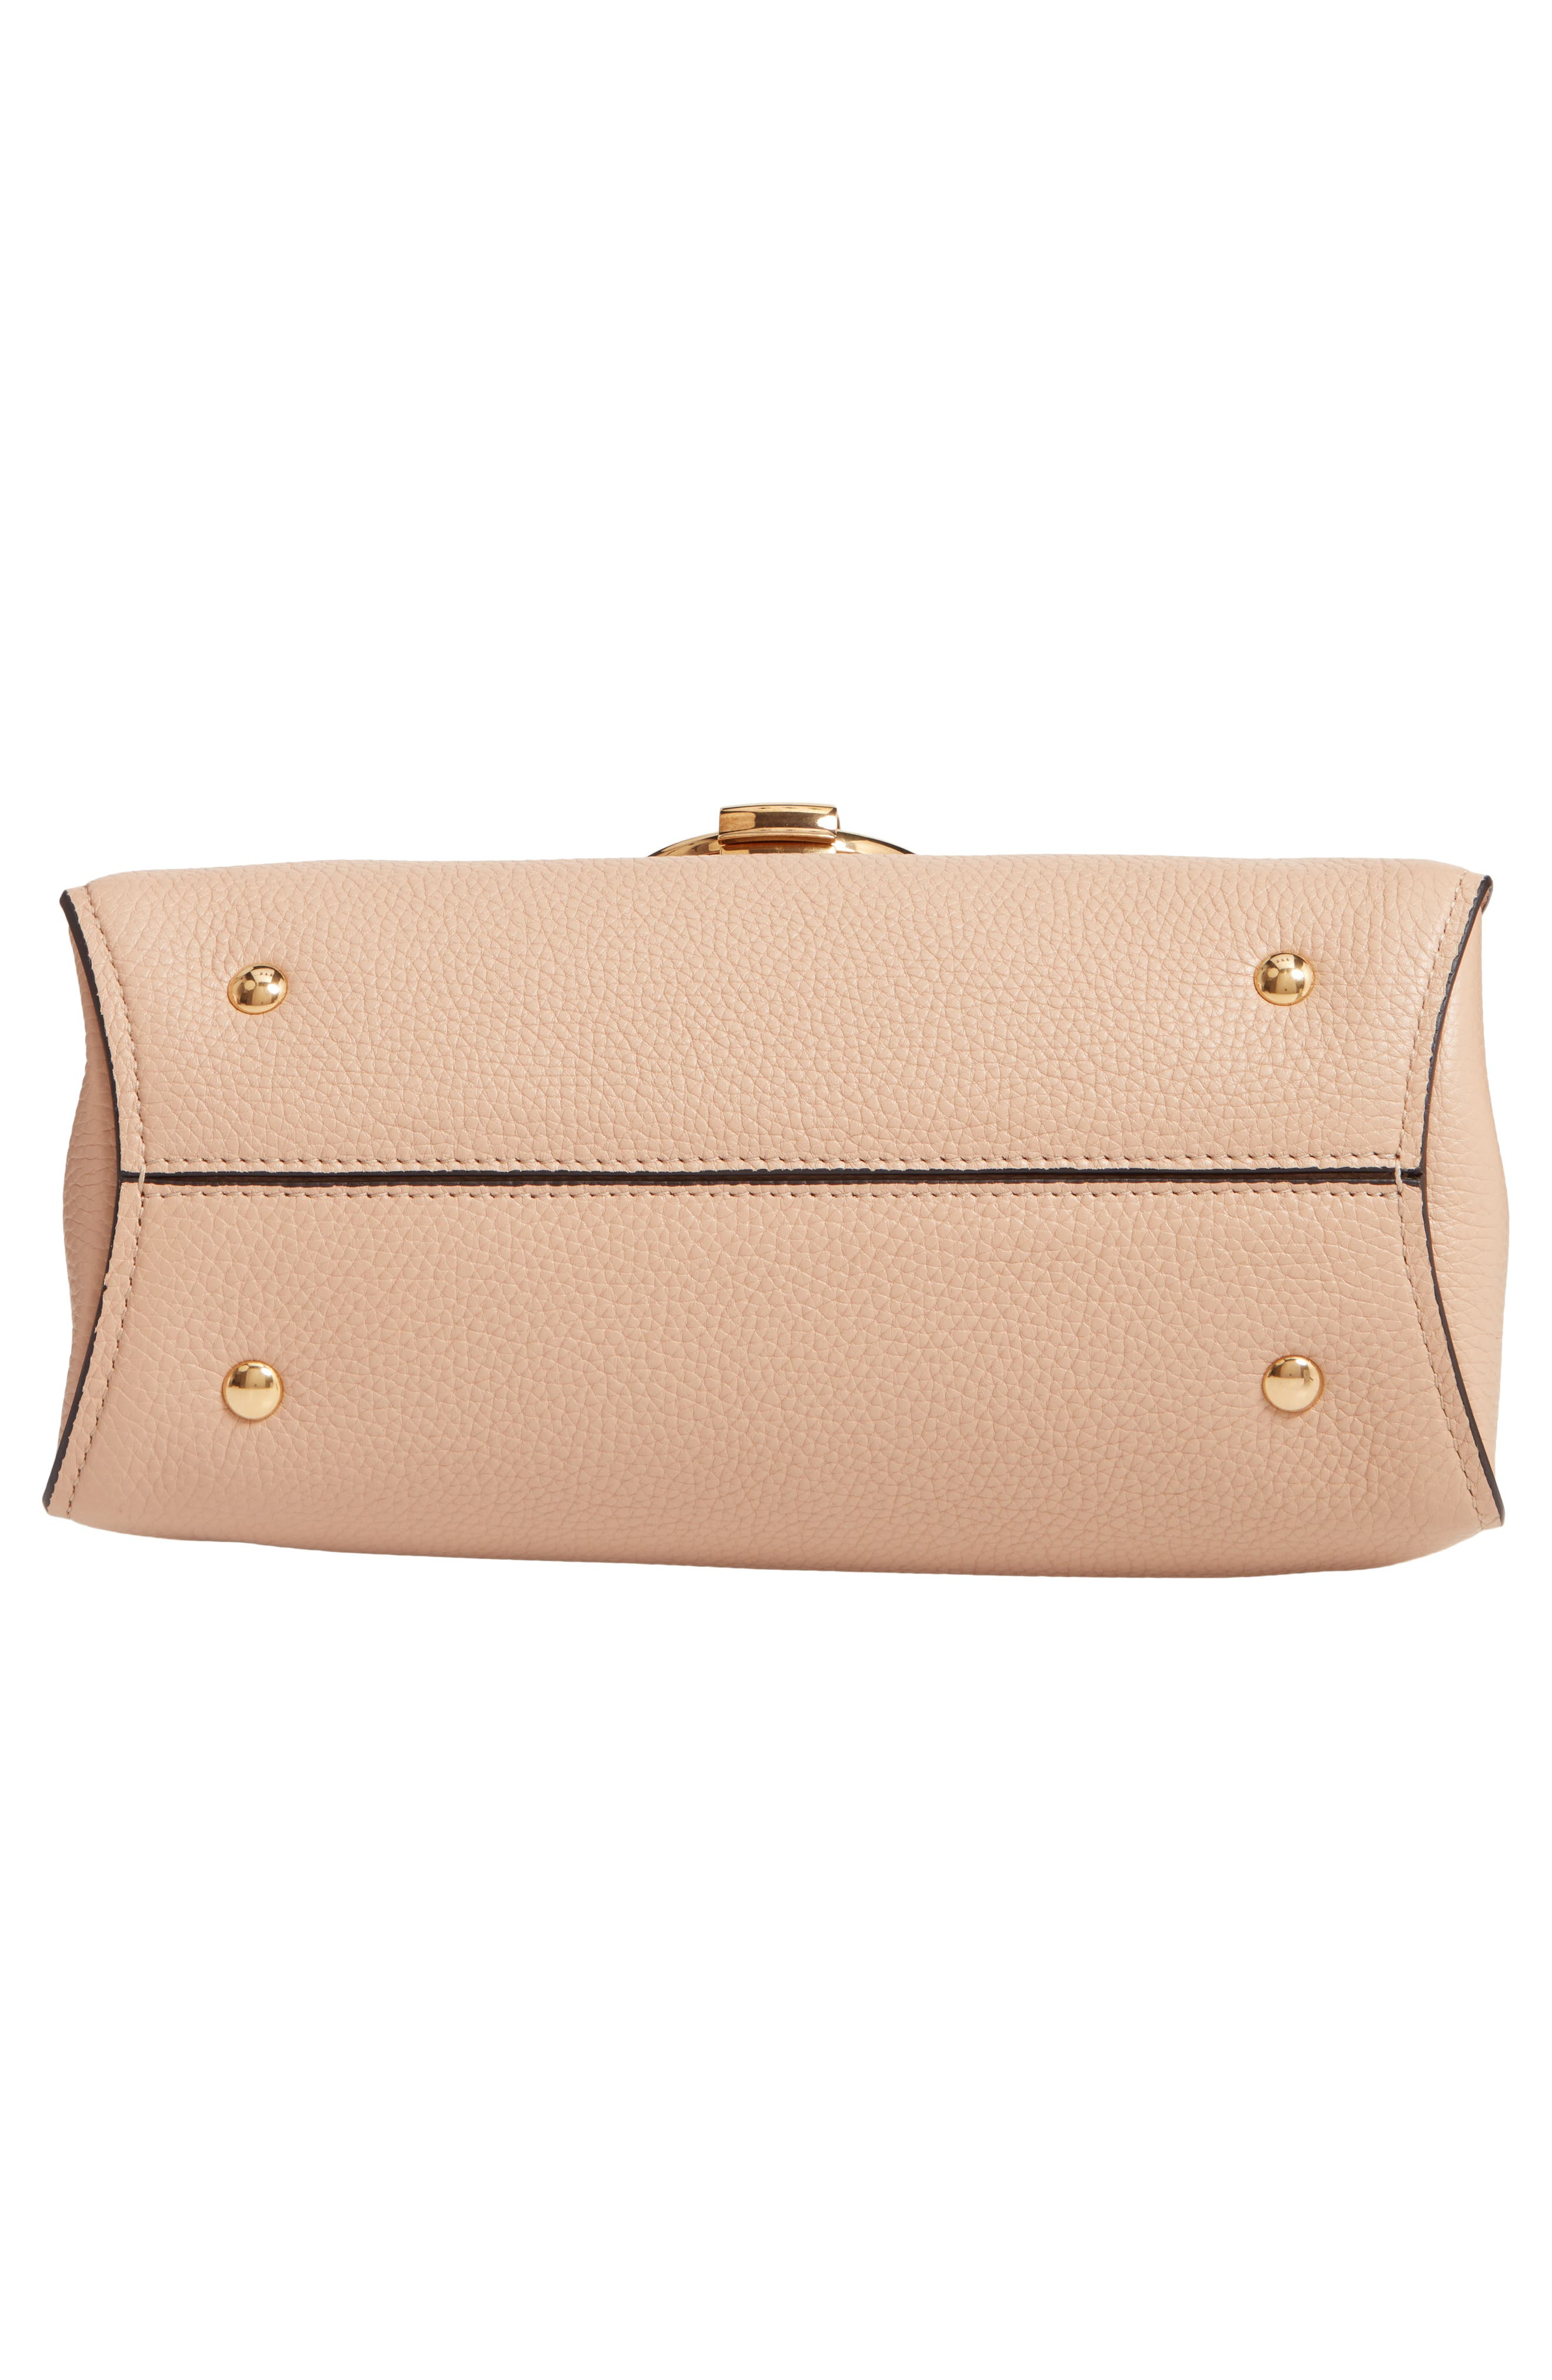 Small Margot Leather Top Handle Bag,                             Alternate thumbnail 6, color,                             ALMOND